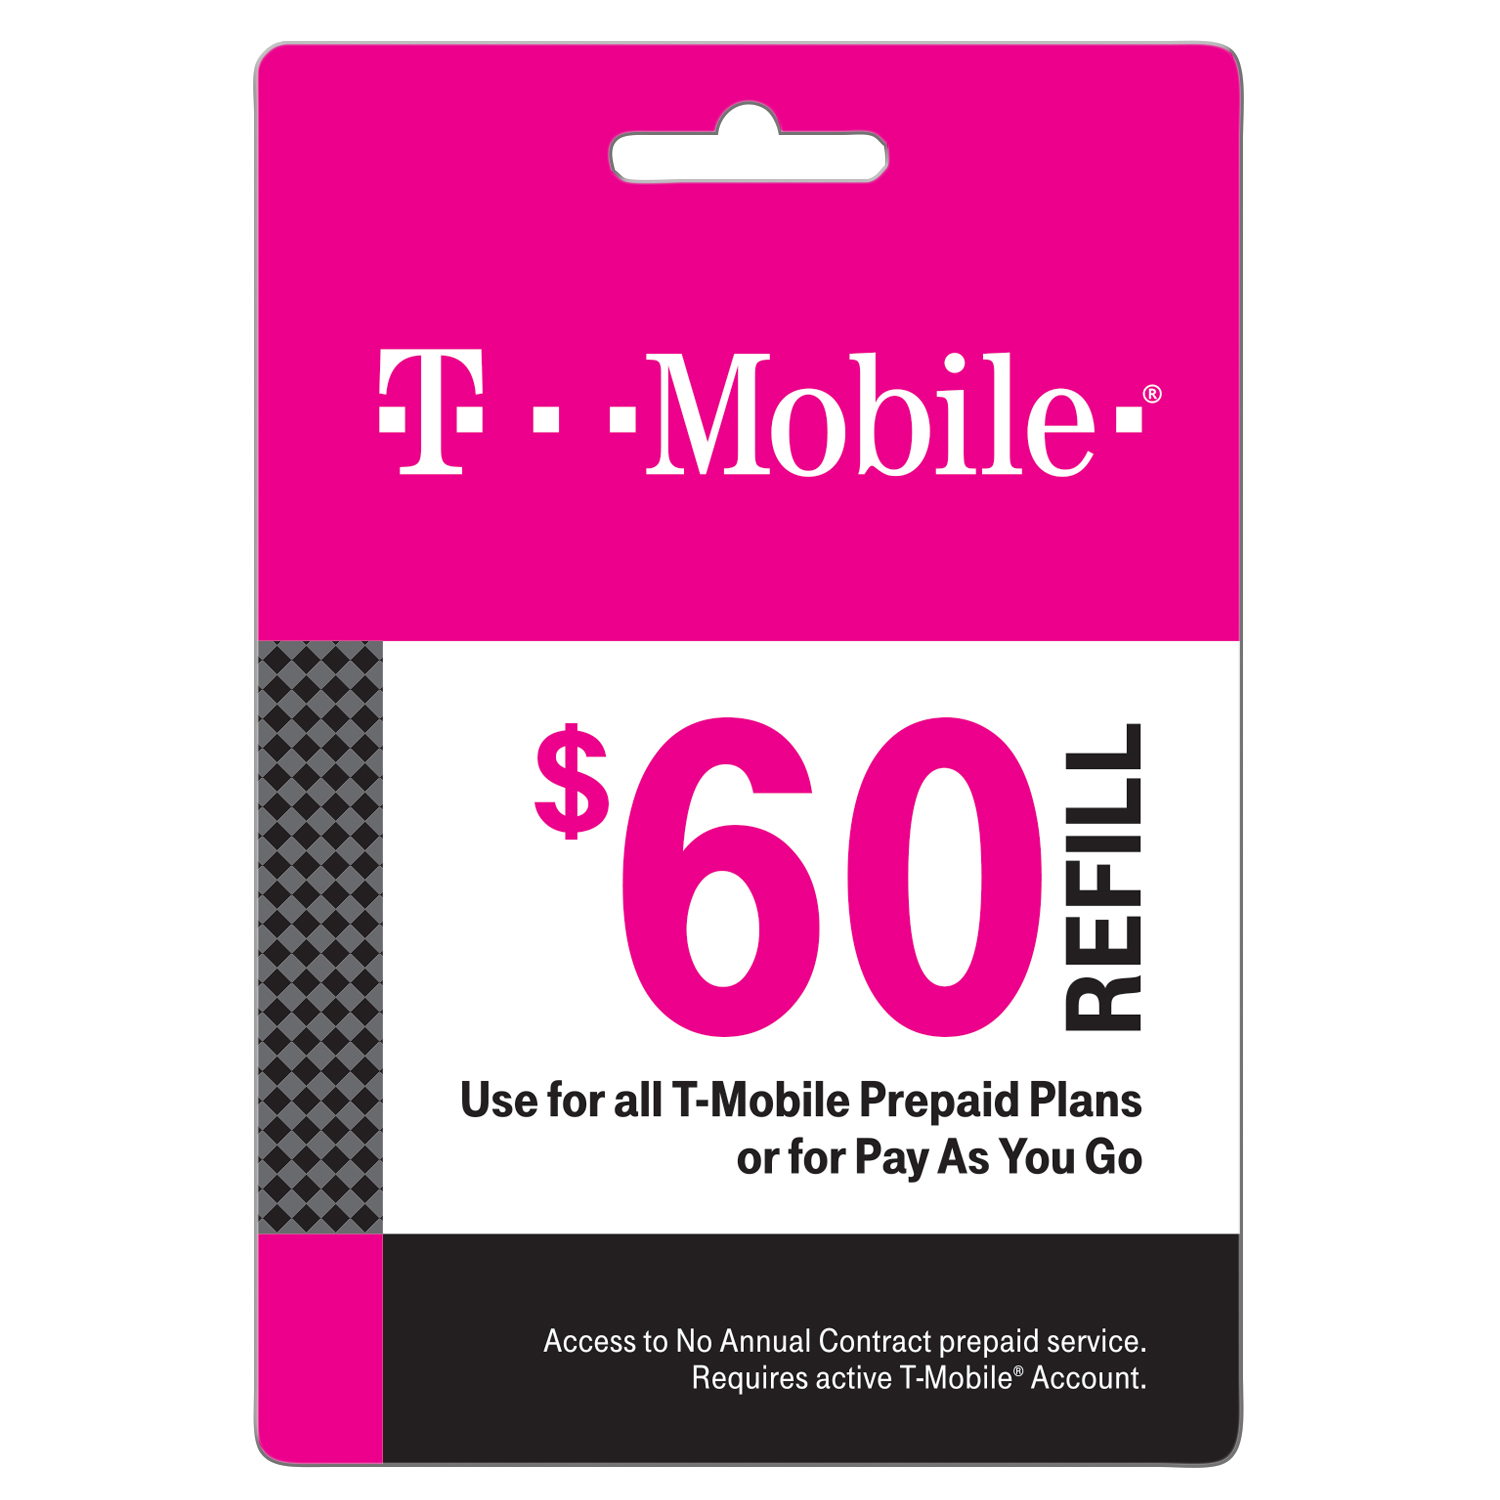 t mobile 60 4g lte email delivery walmartcom